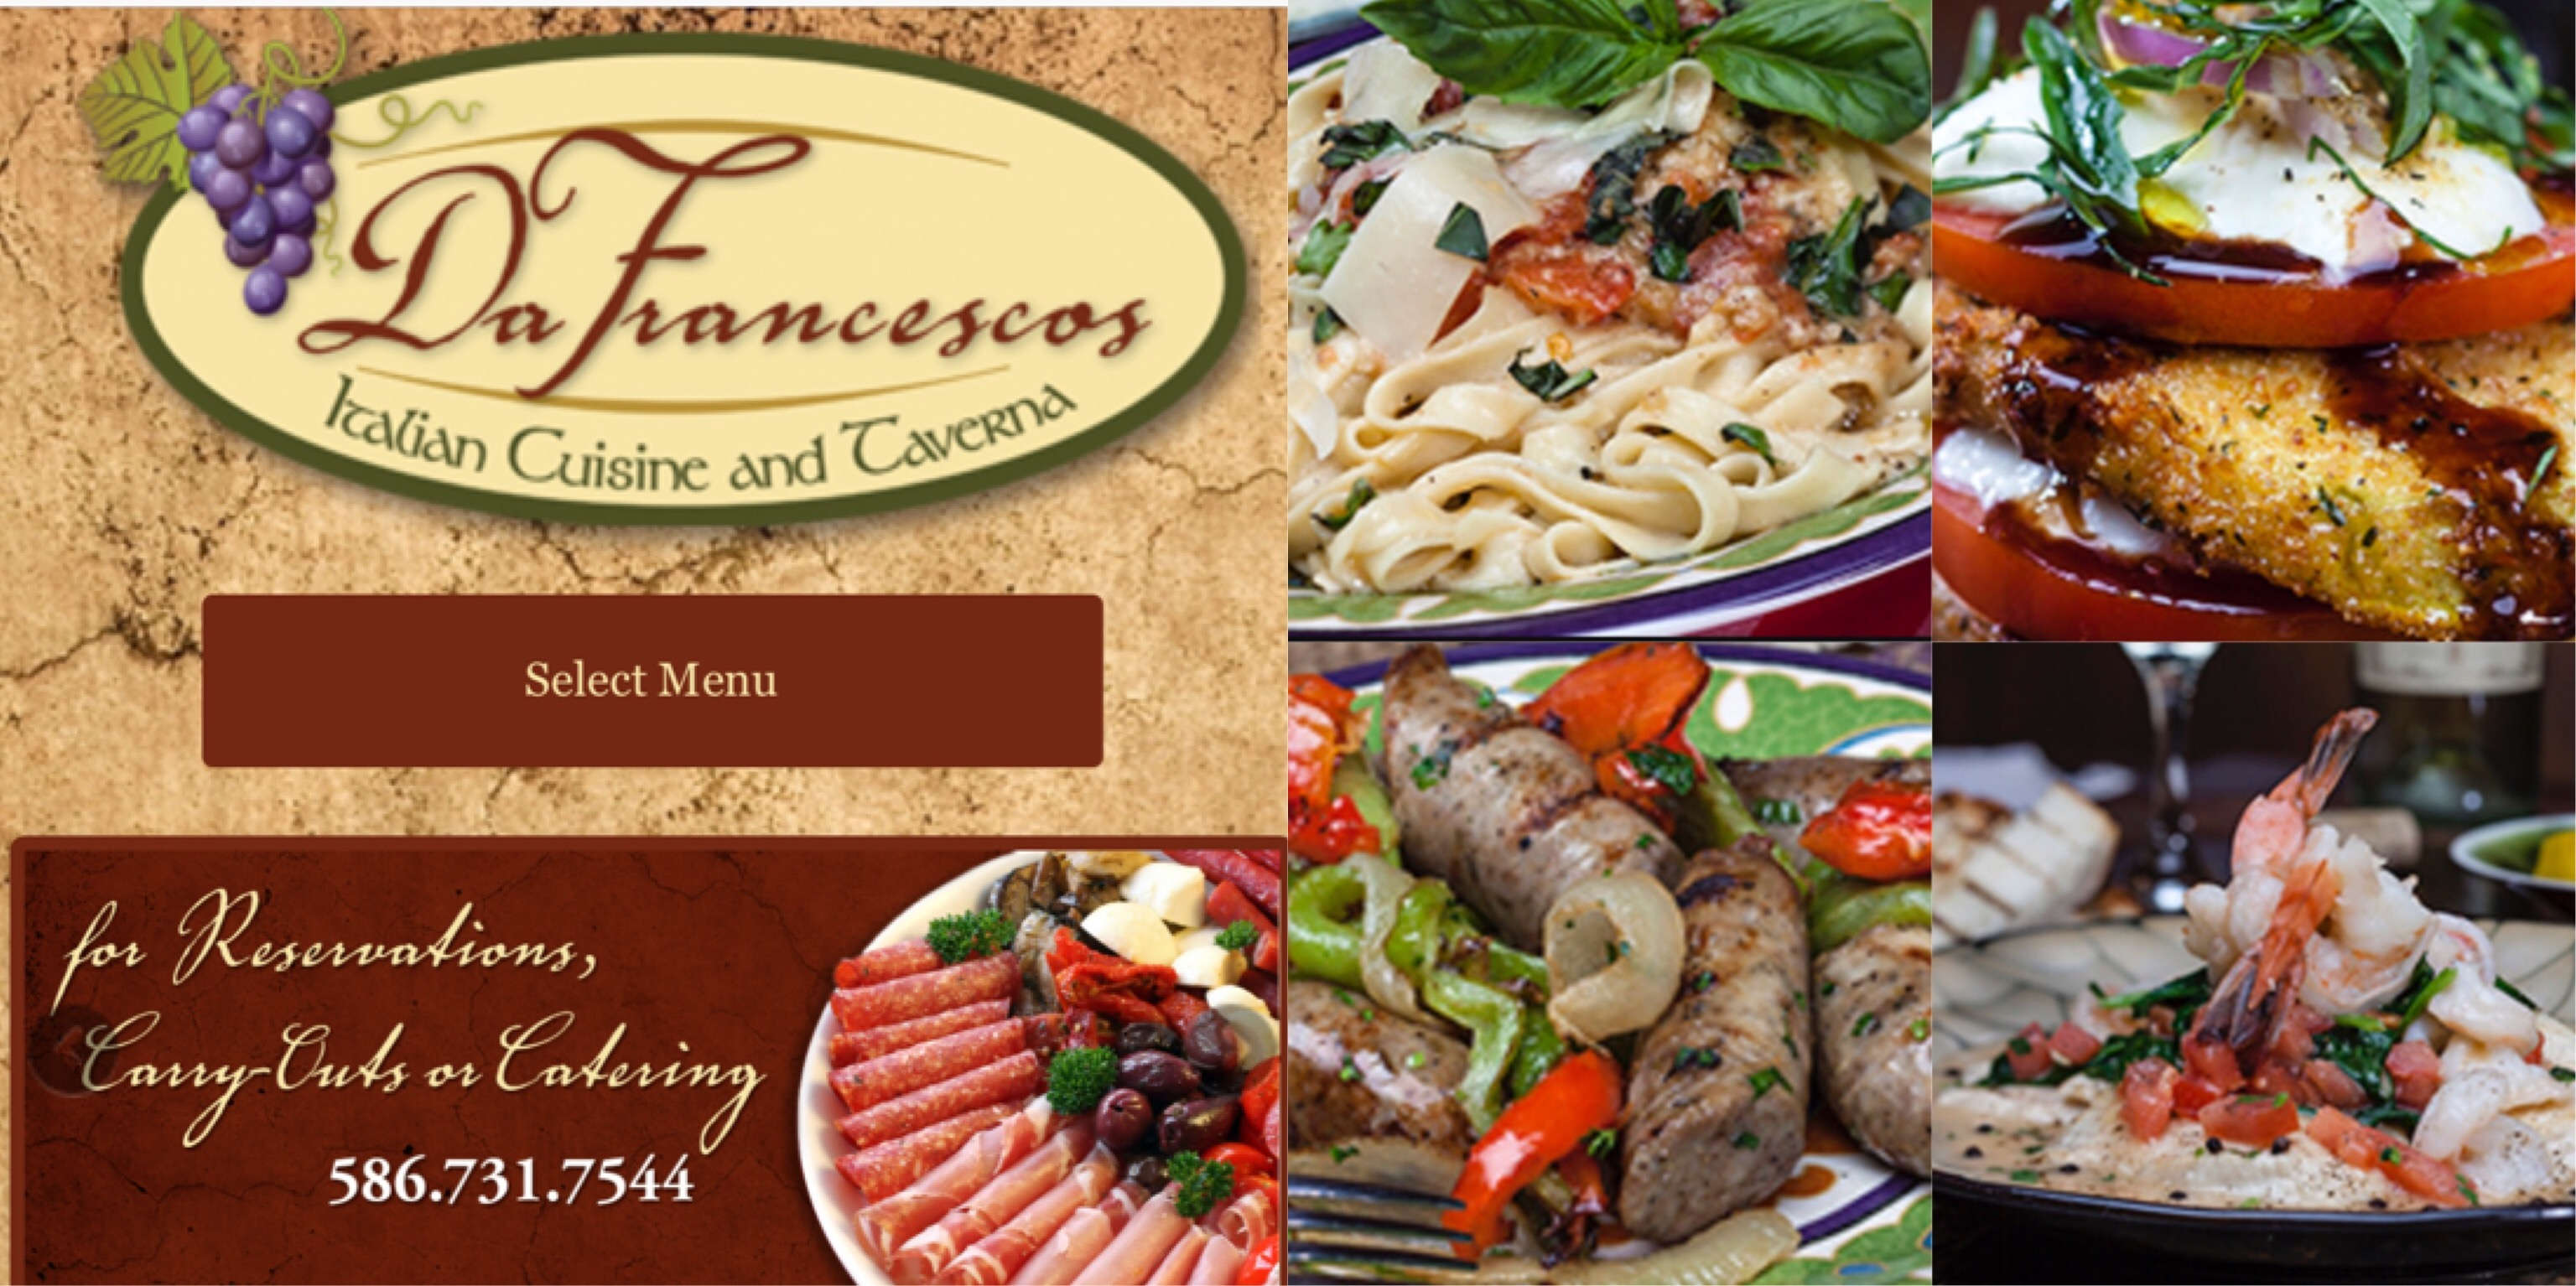 Da Francesco's | Best of Detroit